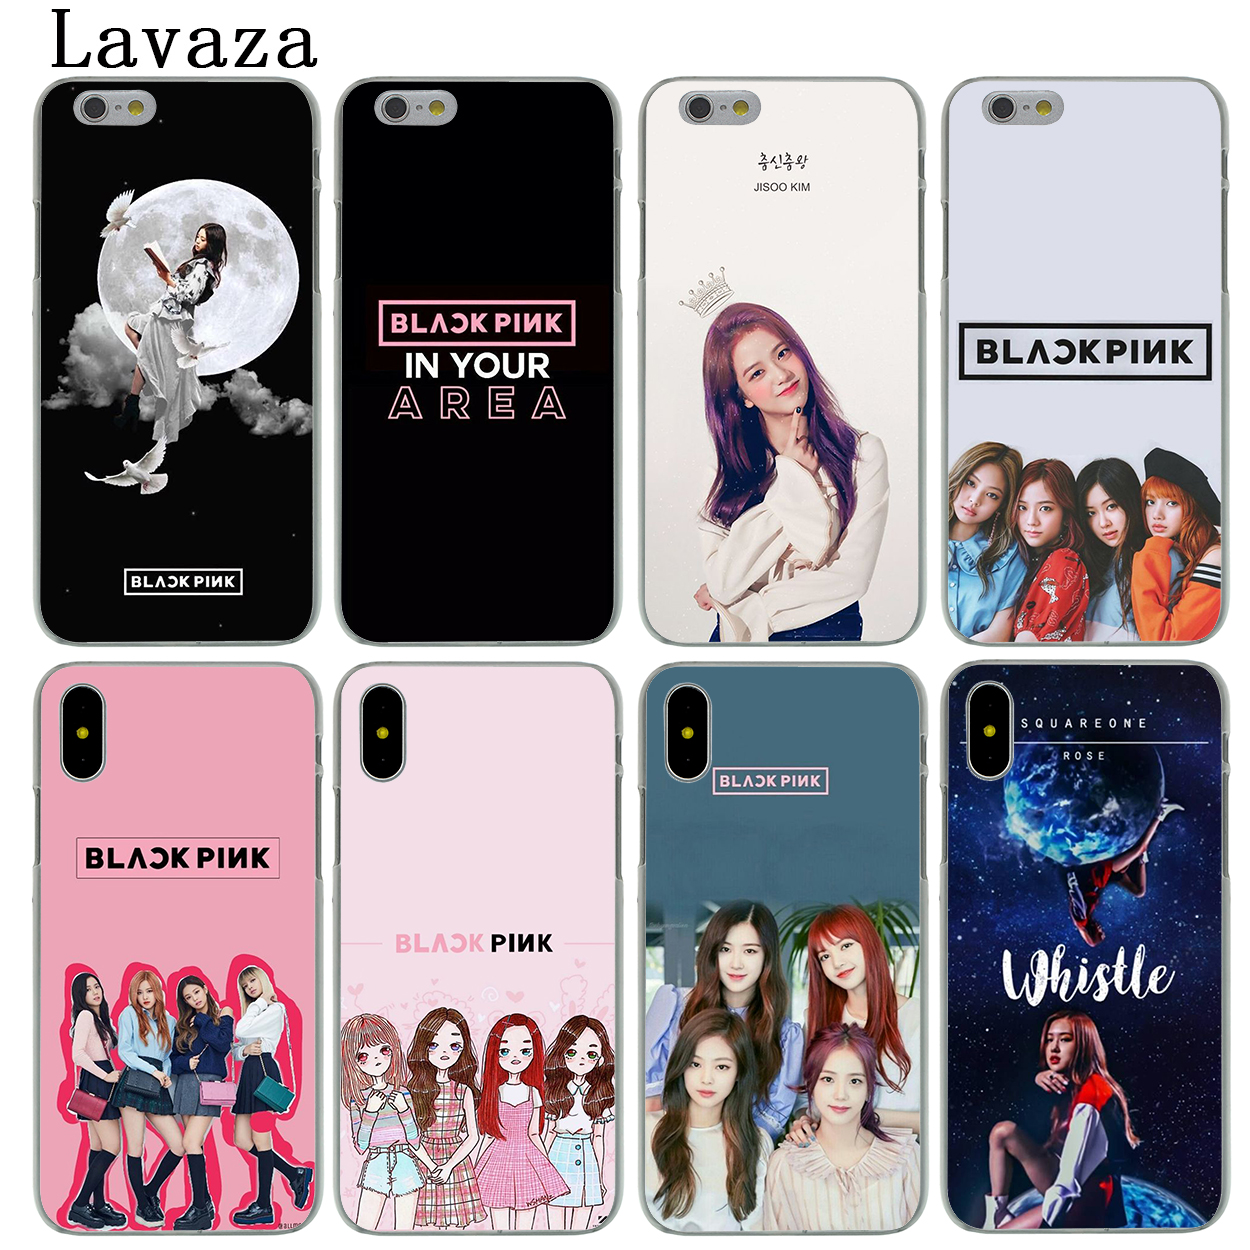 Phone Bags & Cases Lavaza Blackpink Black Pink Lisa Rose Hard Cover Case For Apple Iphone X Xs Max Xr 6 6s 7 8 Plus 5 5s Se 5c 4s 10 Phone Cases